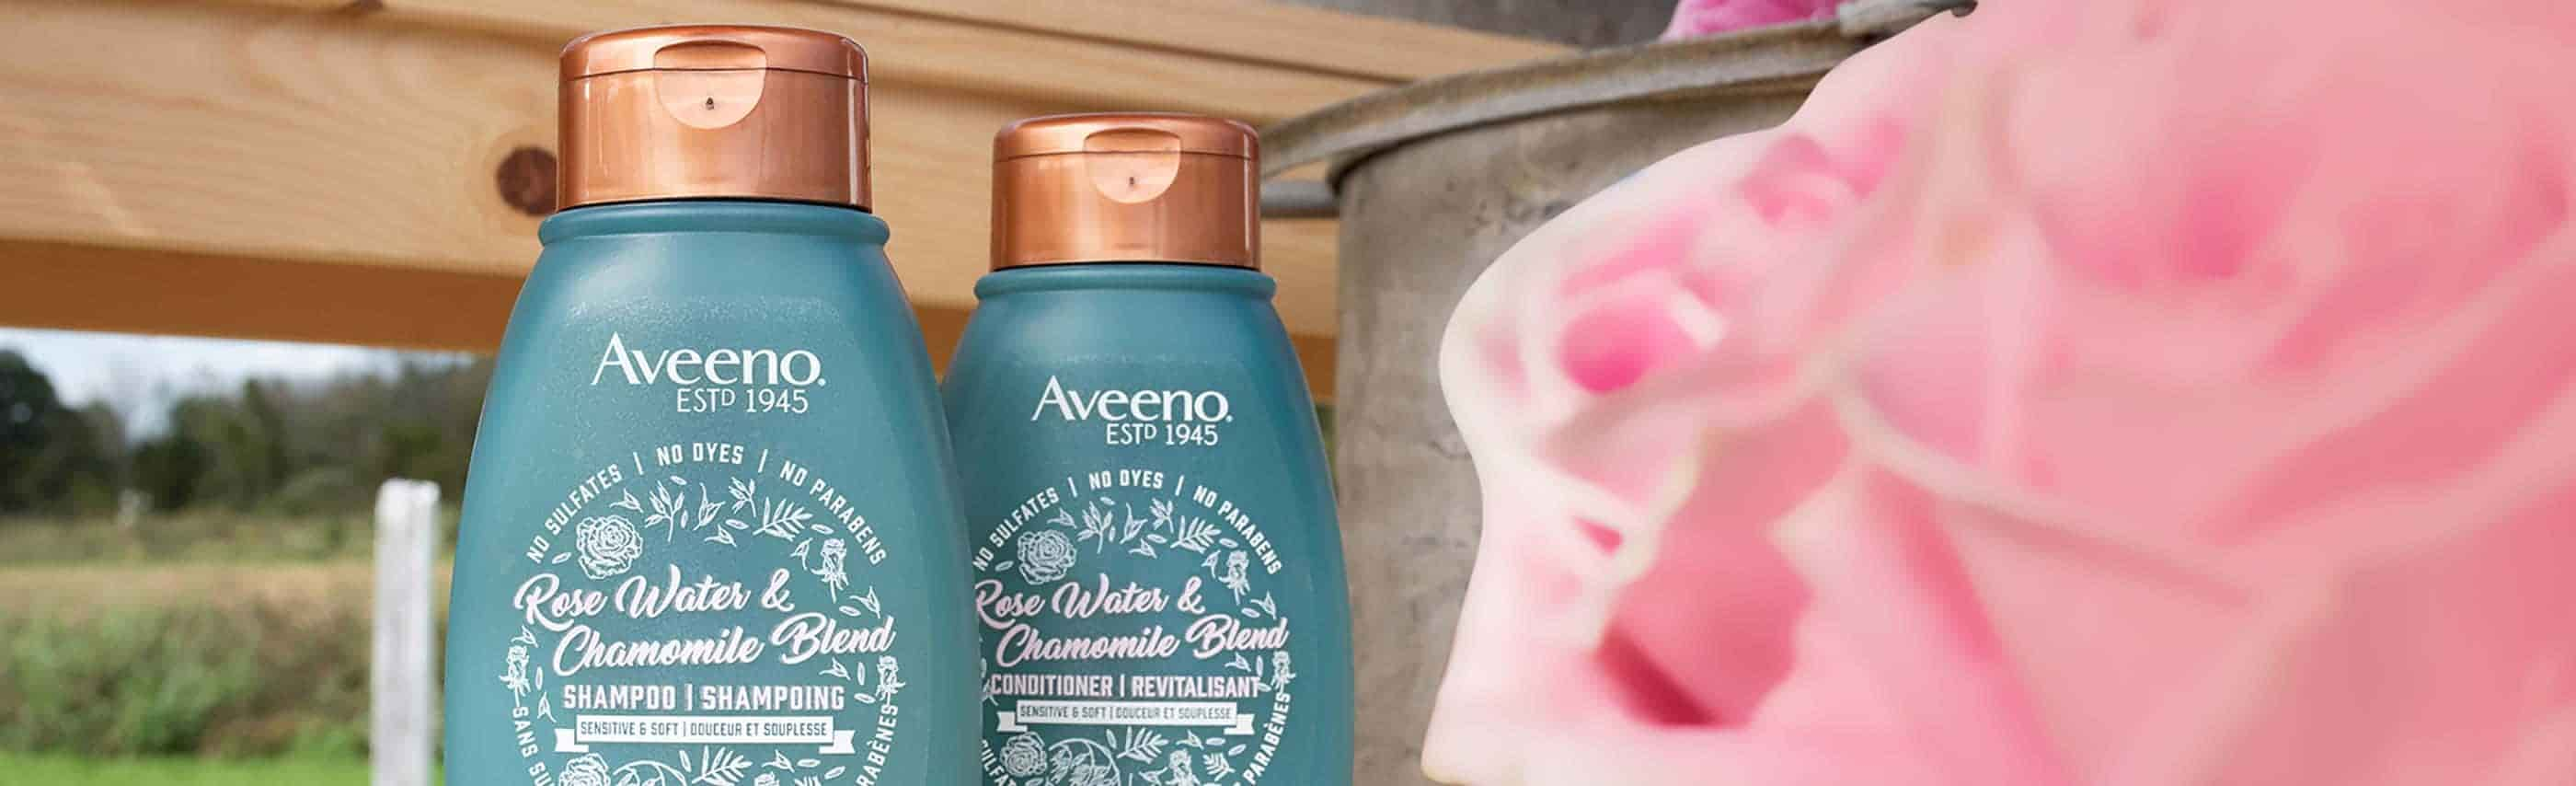 two bottles of aveeno products behind a rose